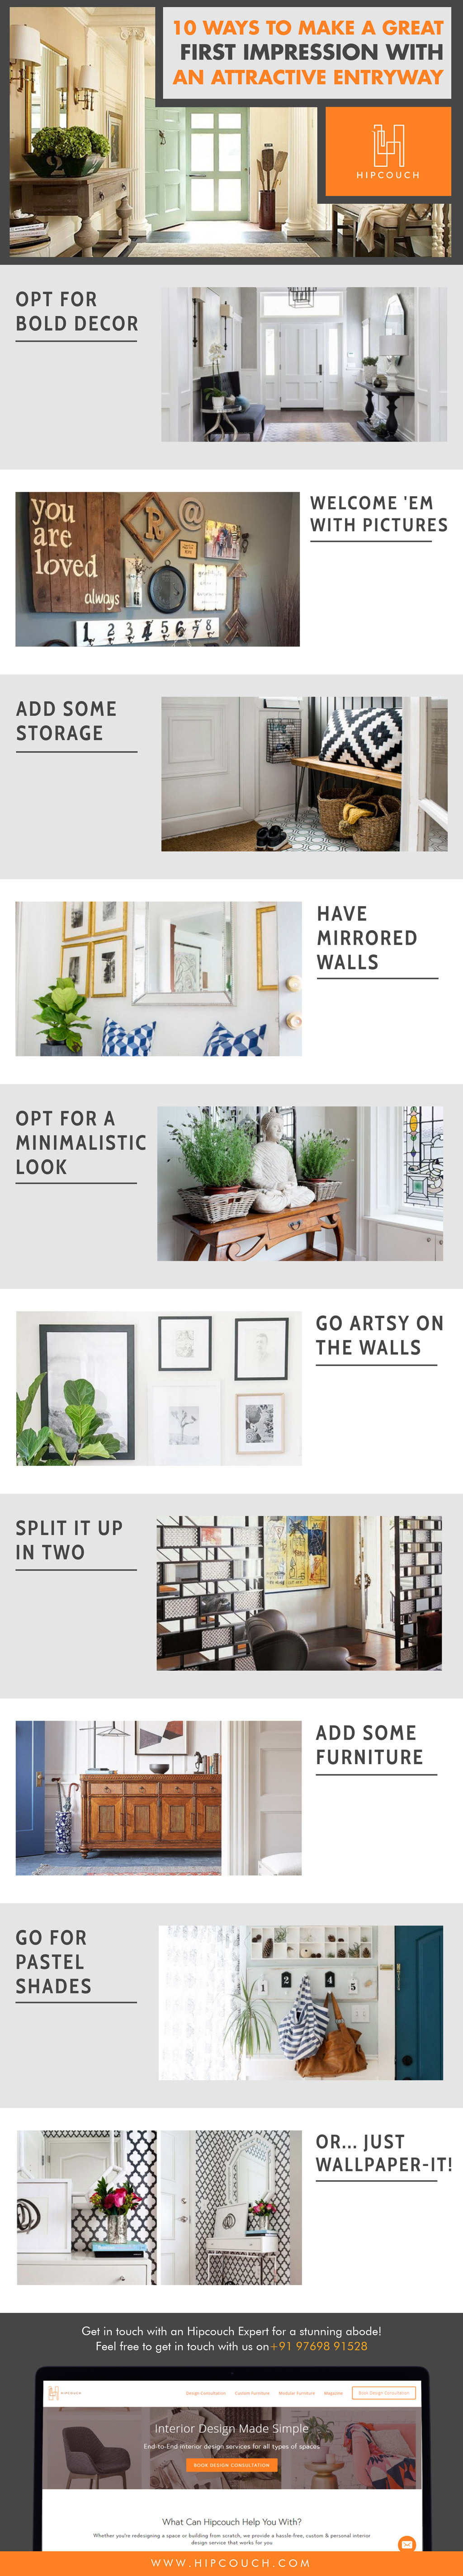 Make A Great First Impression With An Attractive Entryway!